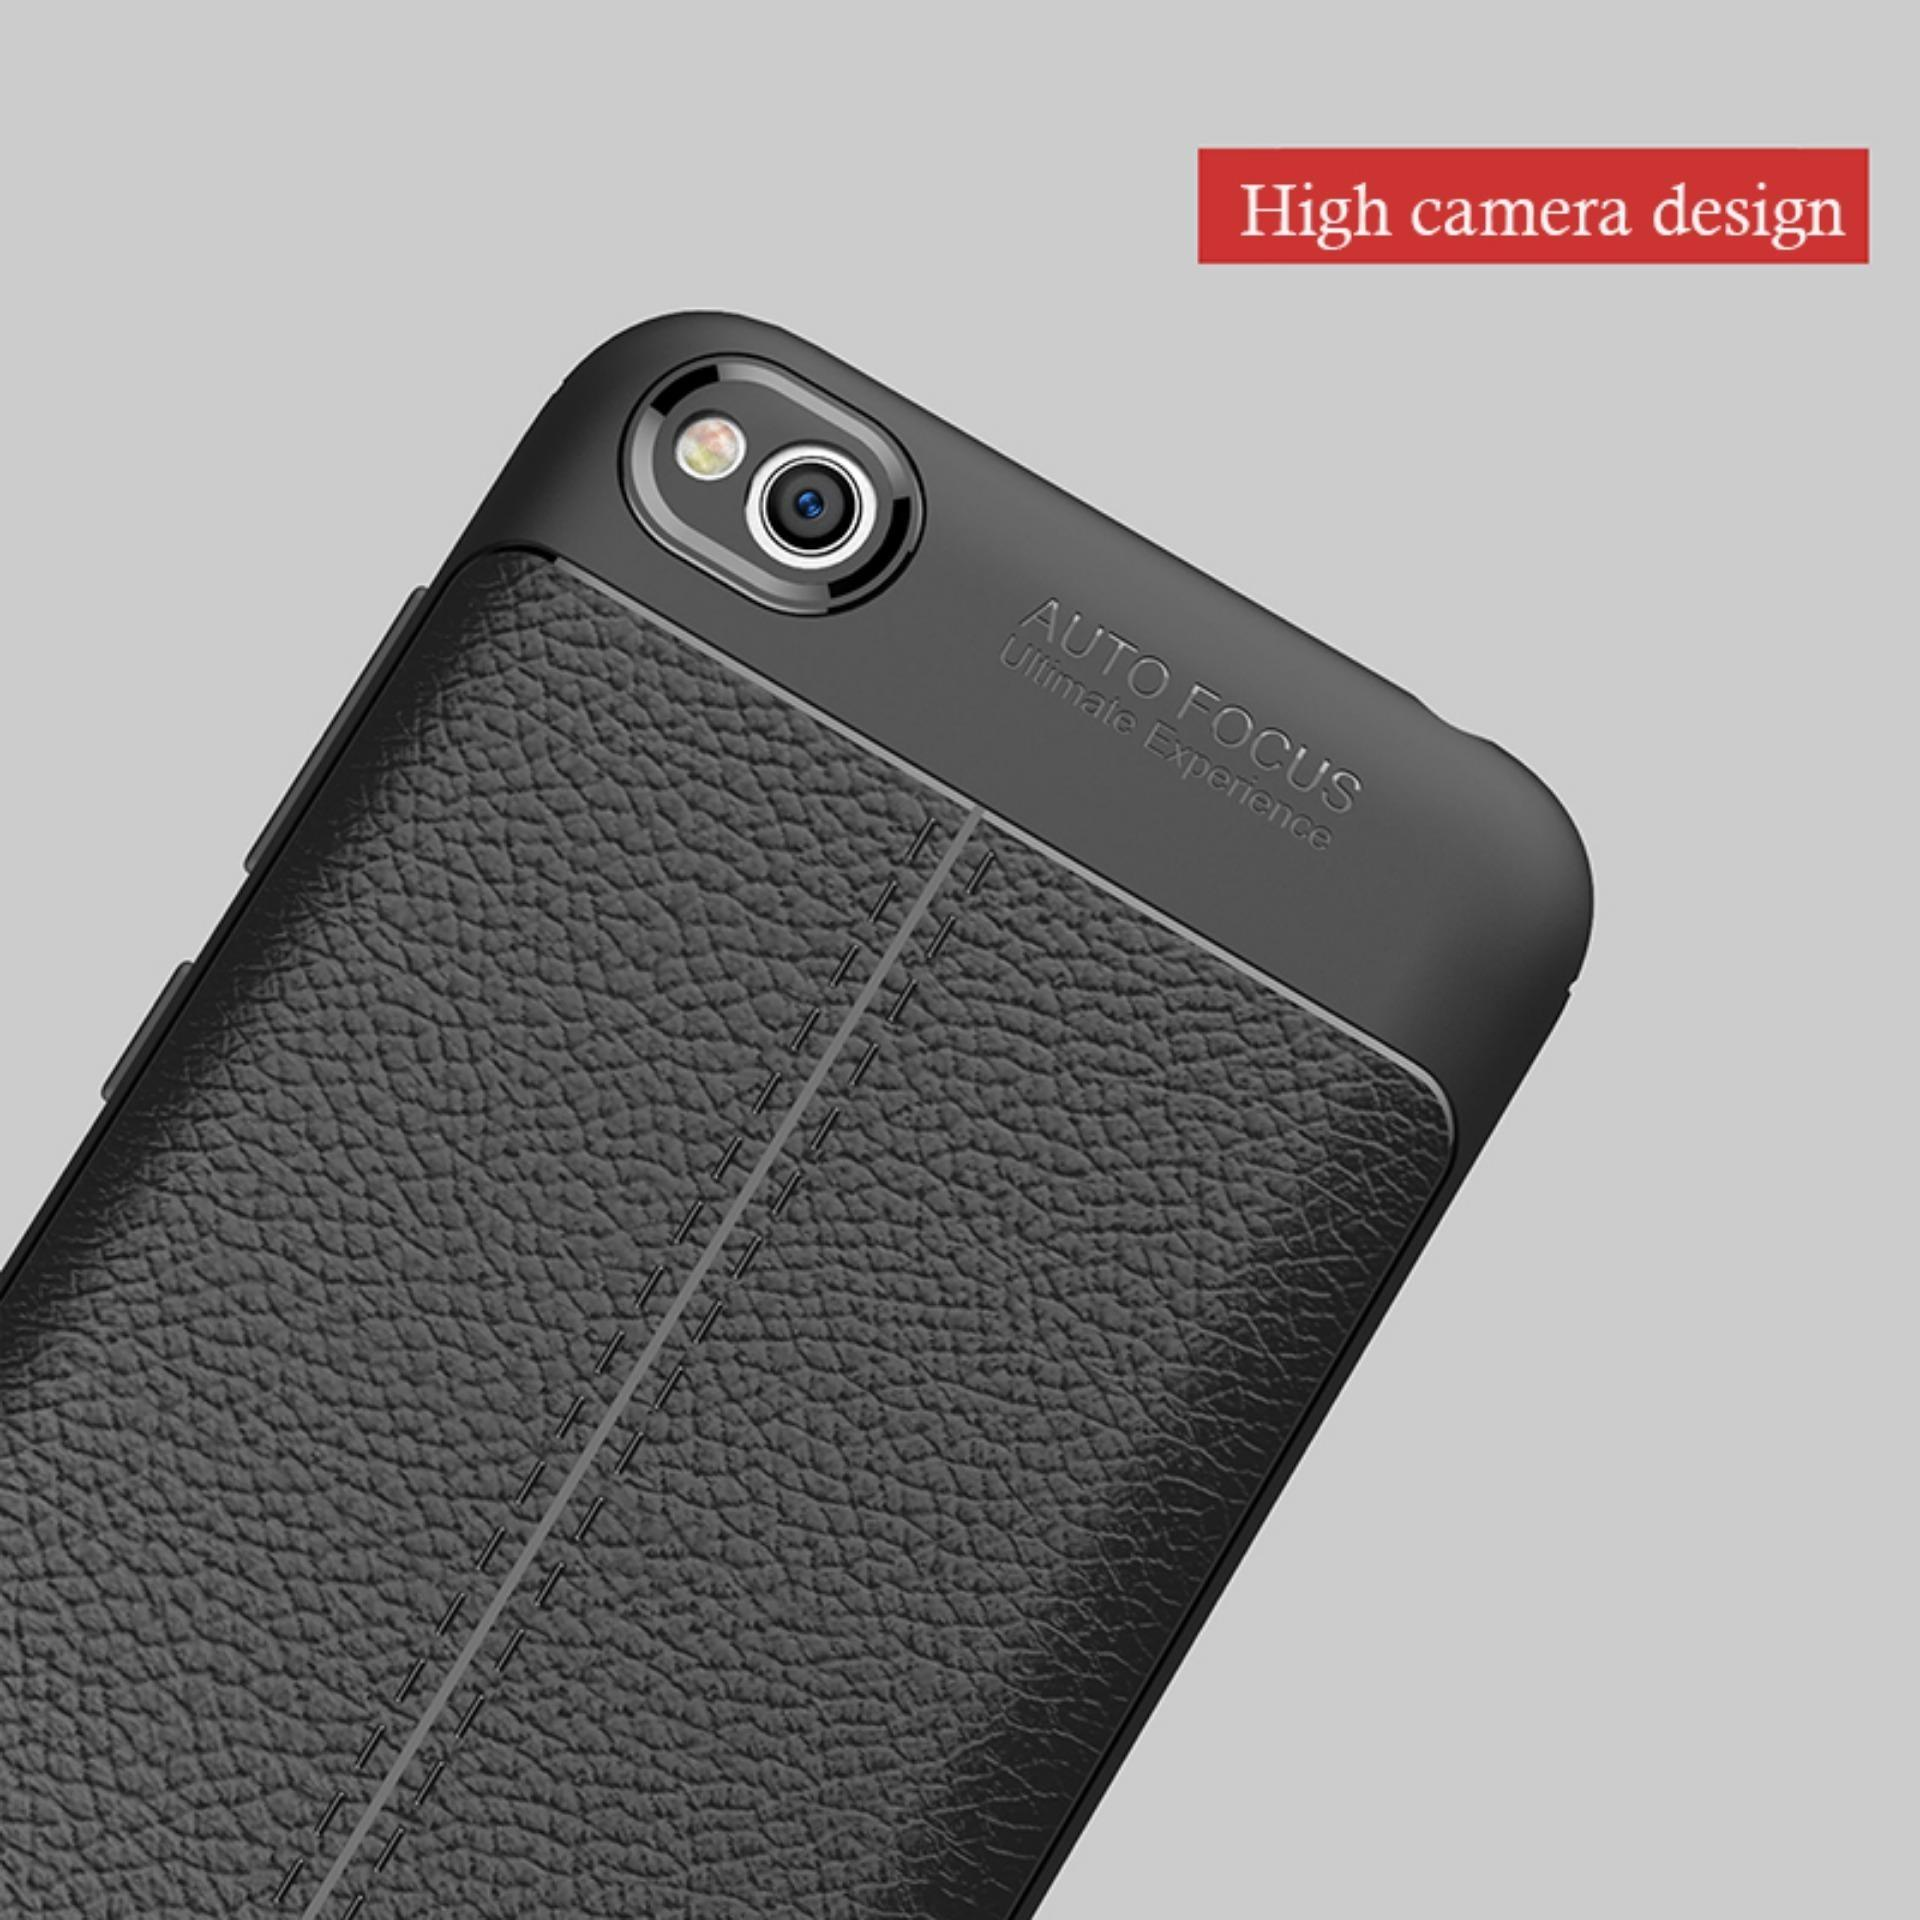 Lapak Case Leather Ultimate Experience Shockproof Premium Quality Hybrid Case for Xiaomi Redmi .